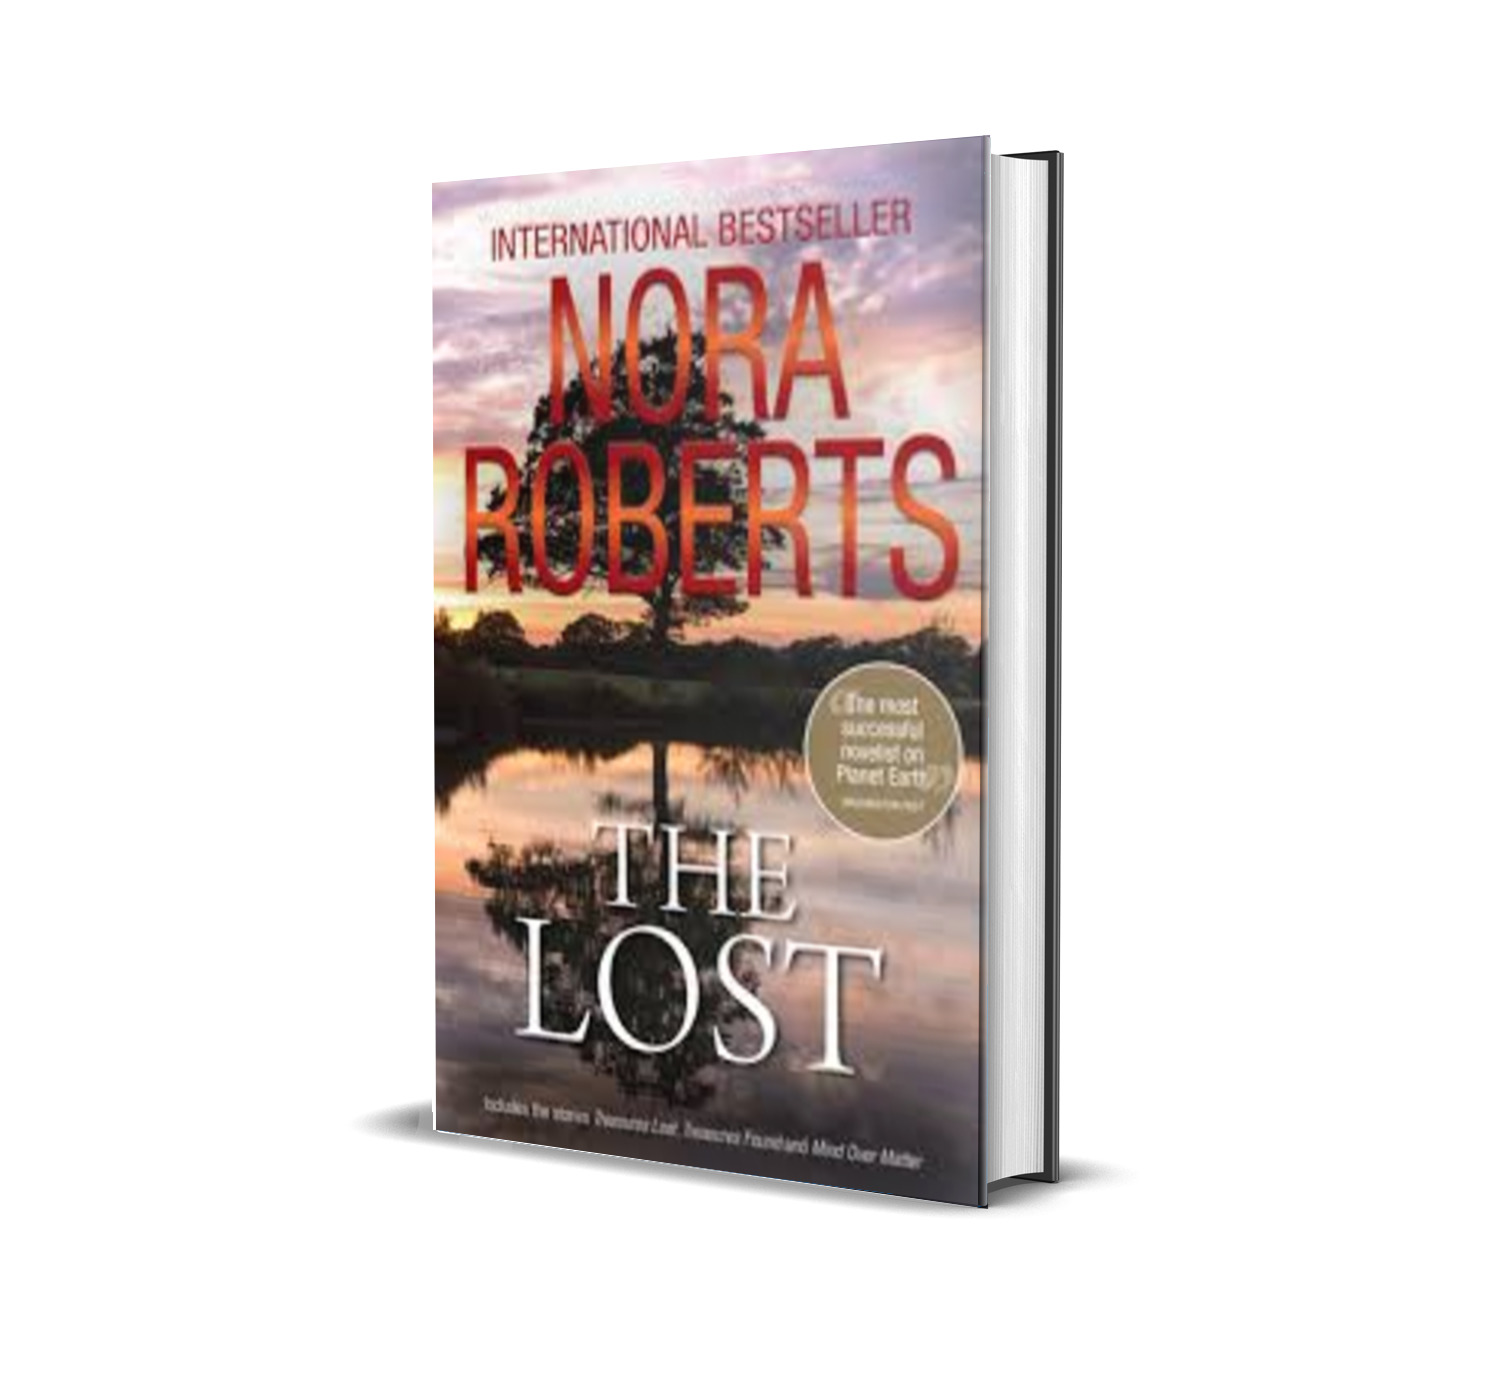 THE LOST NORA ROBERTS